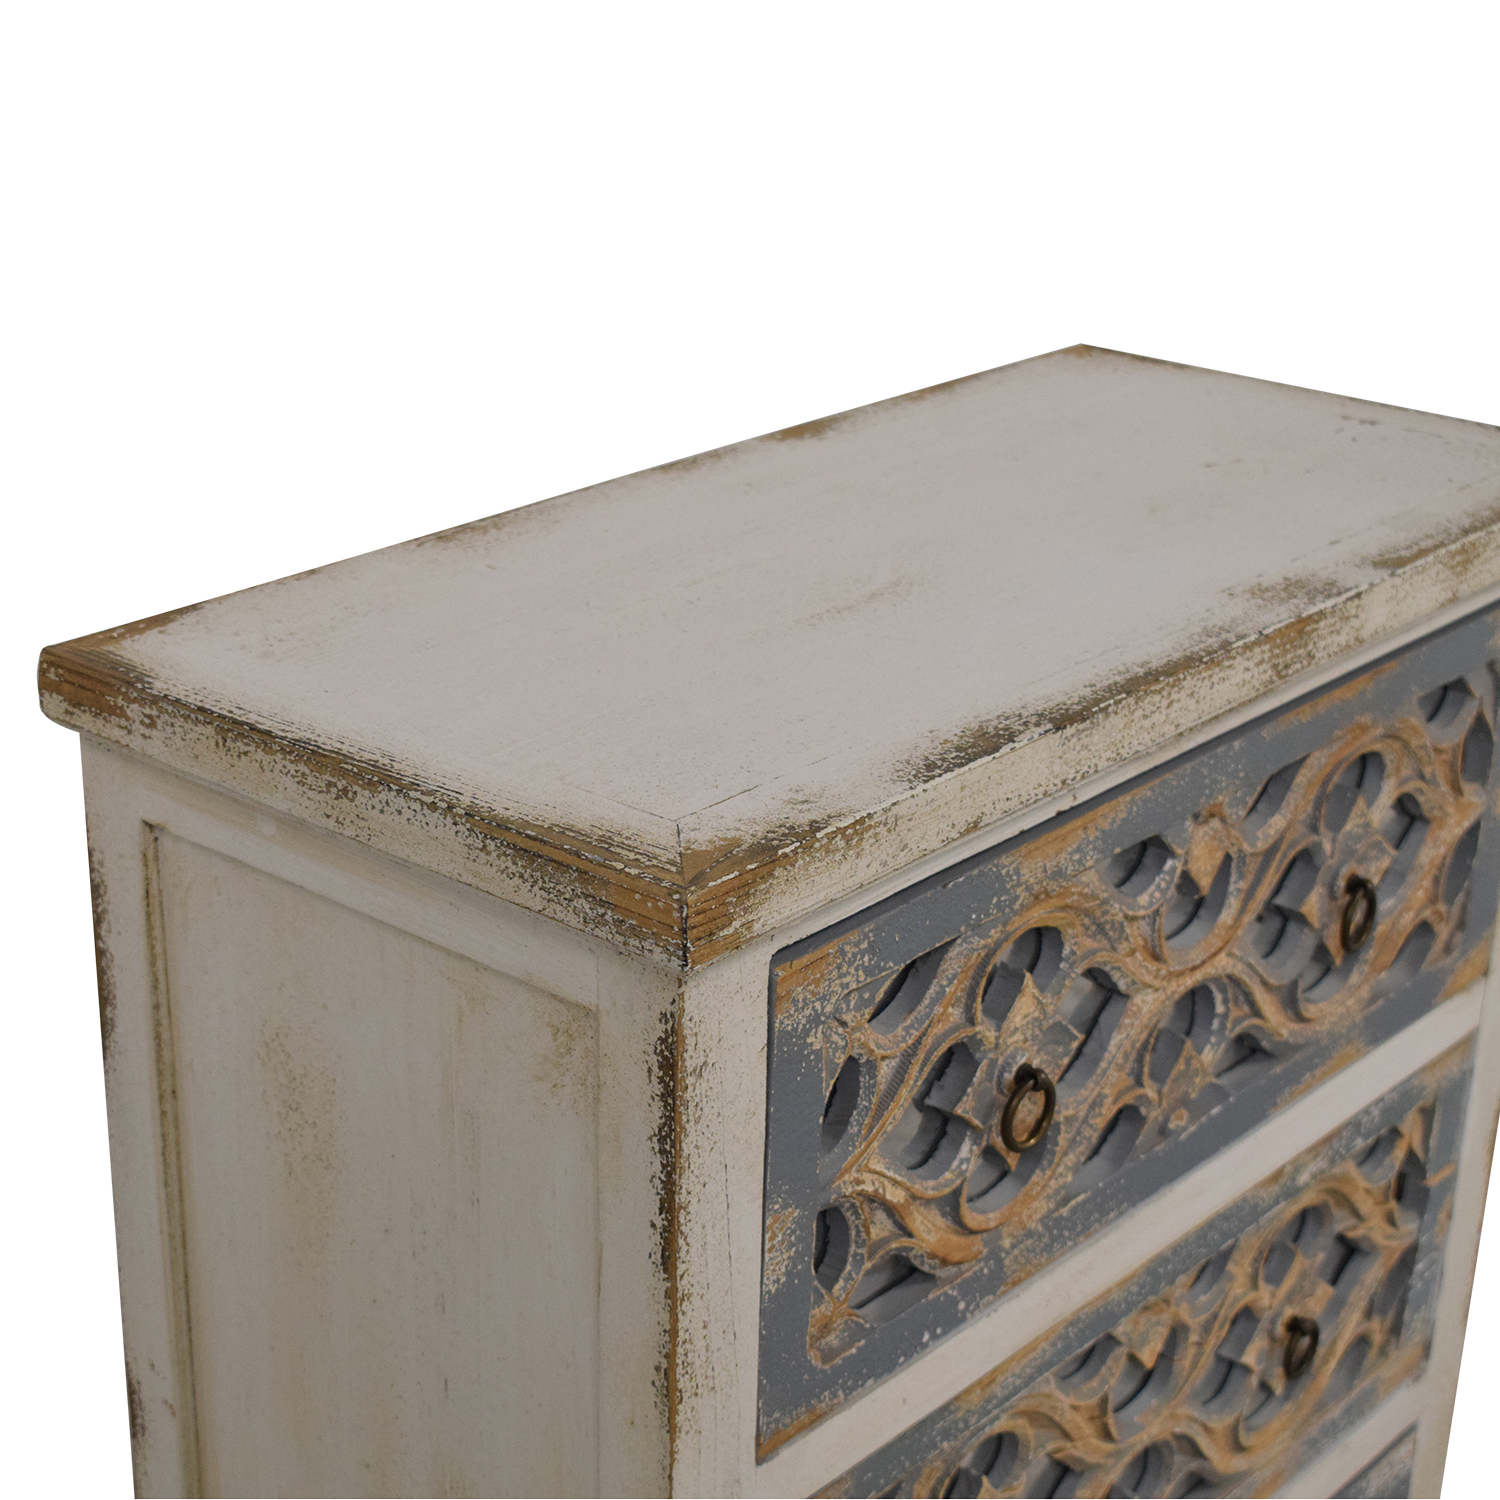 Pier 1 Pier 1 Cosette Antiqued Mirrored Chest second hand